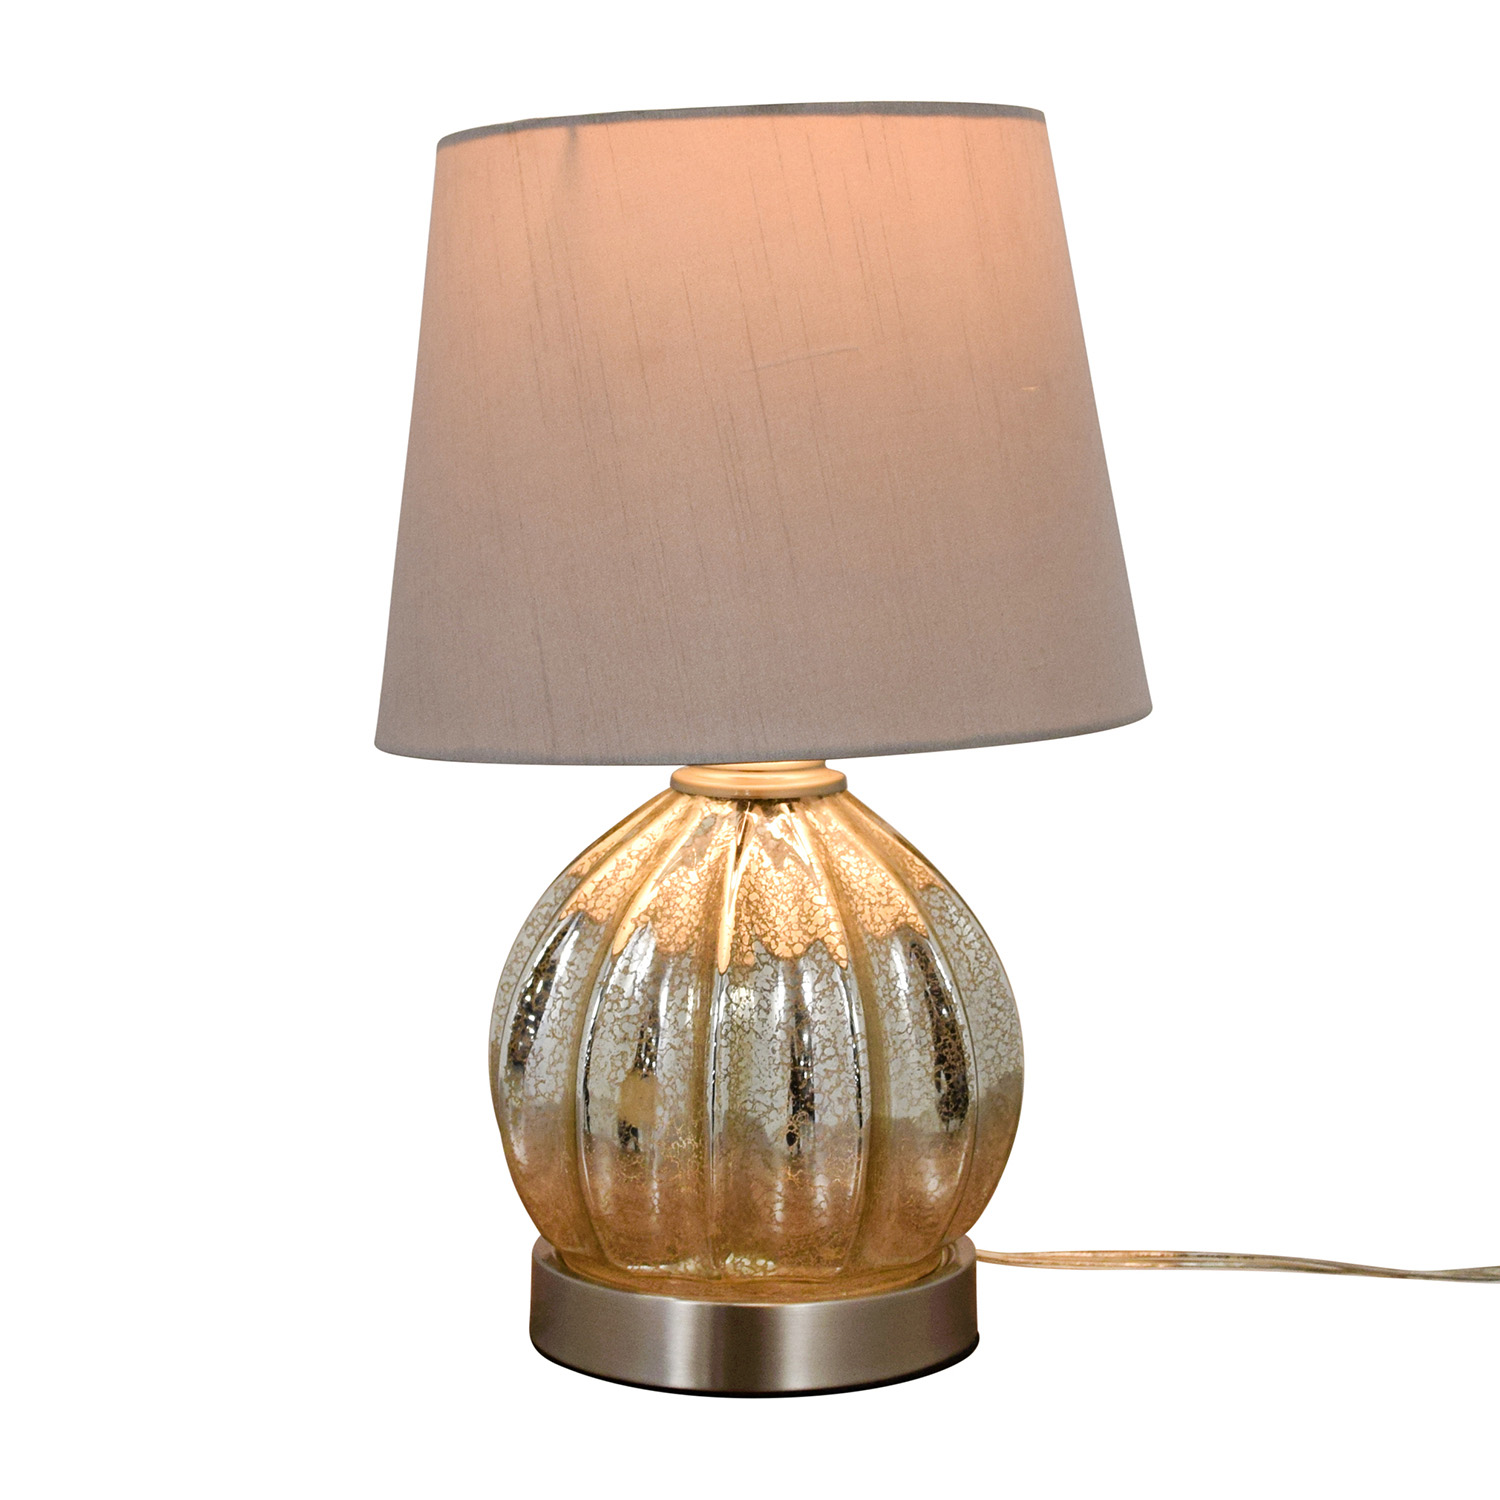 Round Mercury Glass Table Lamp Lamps